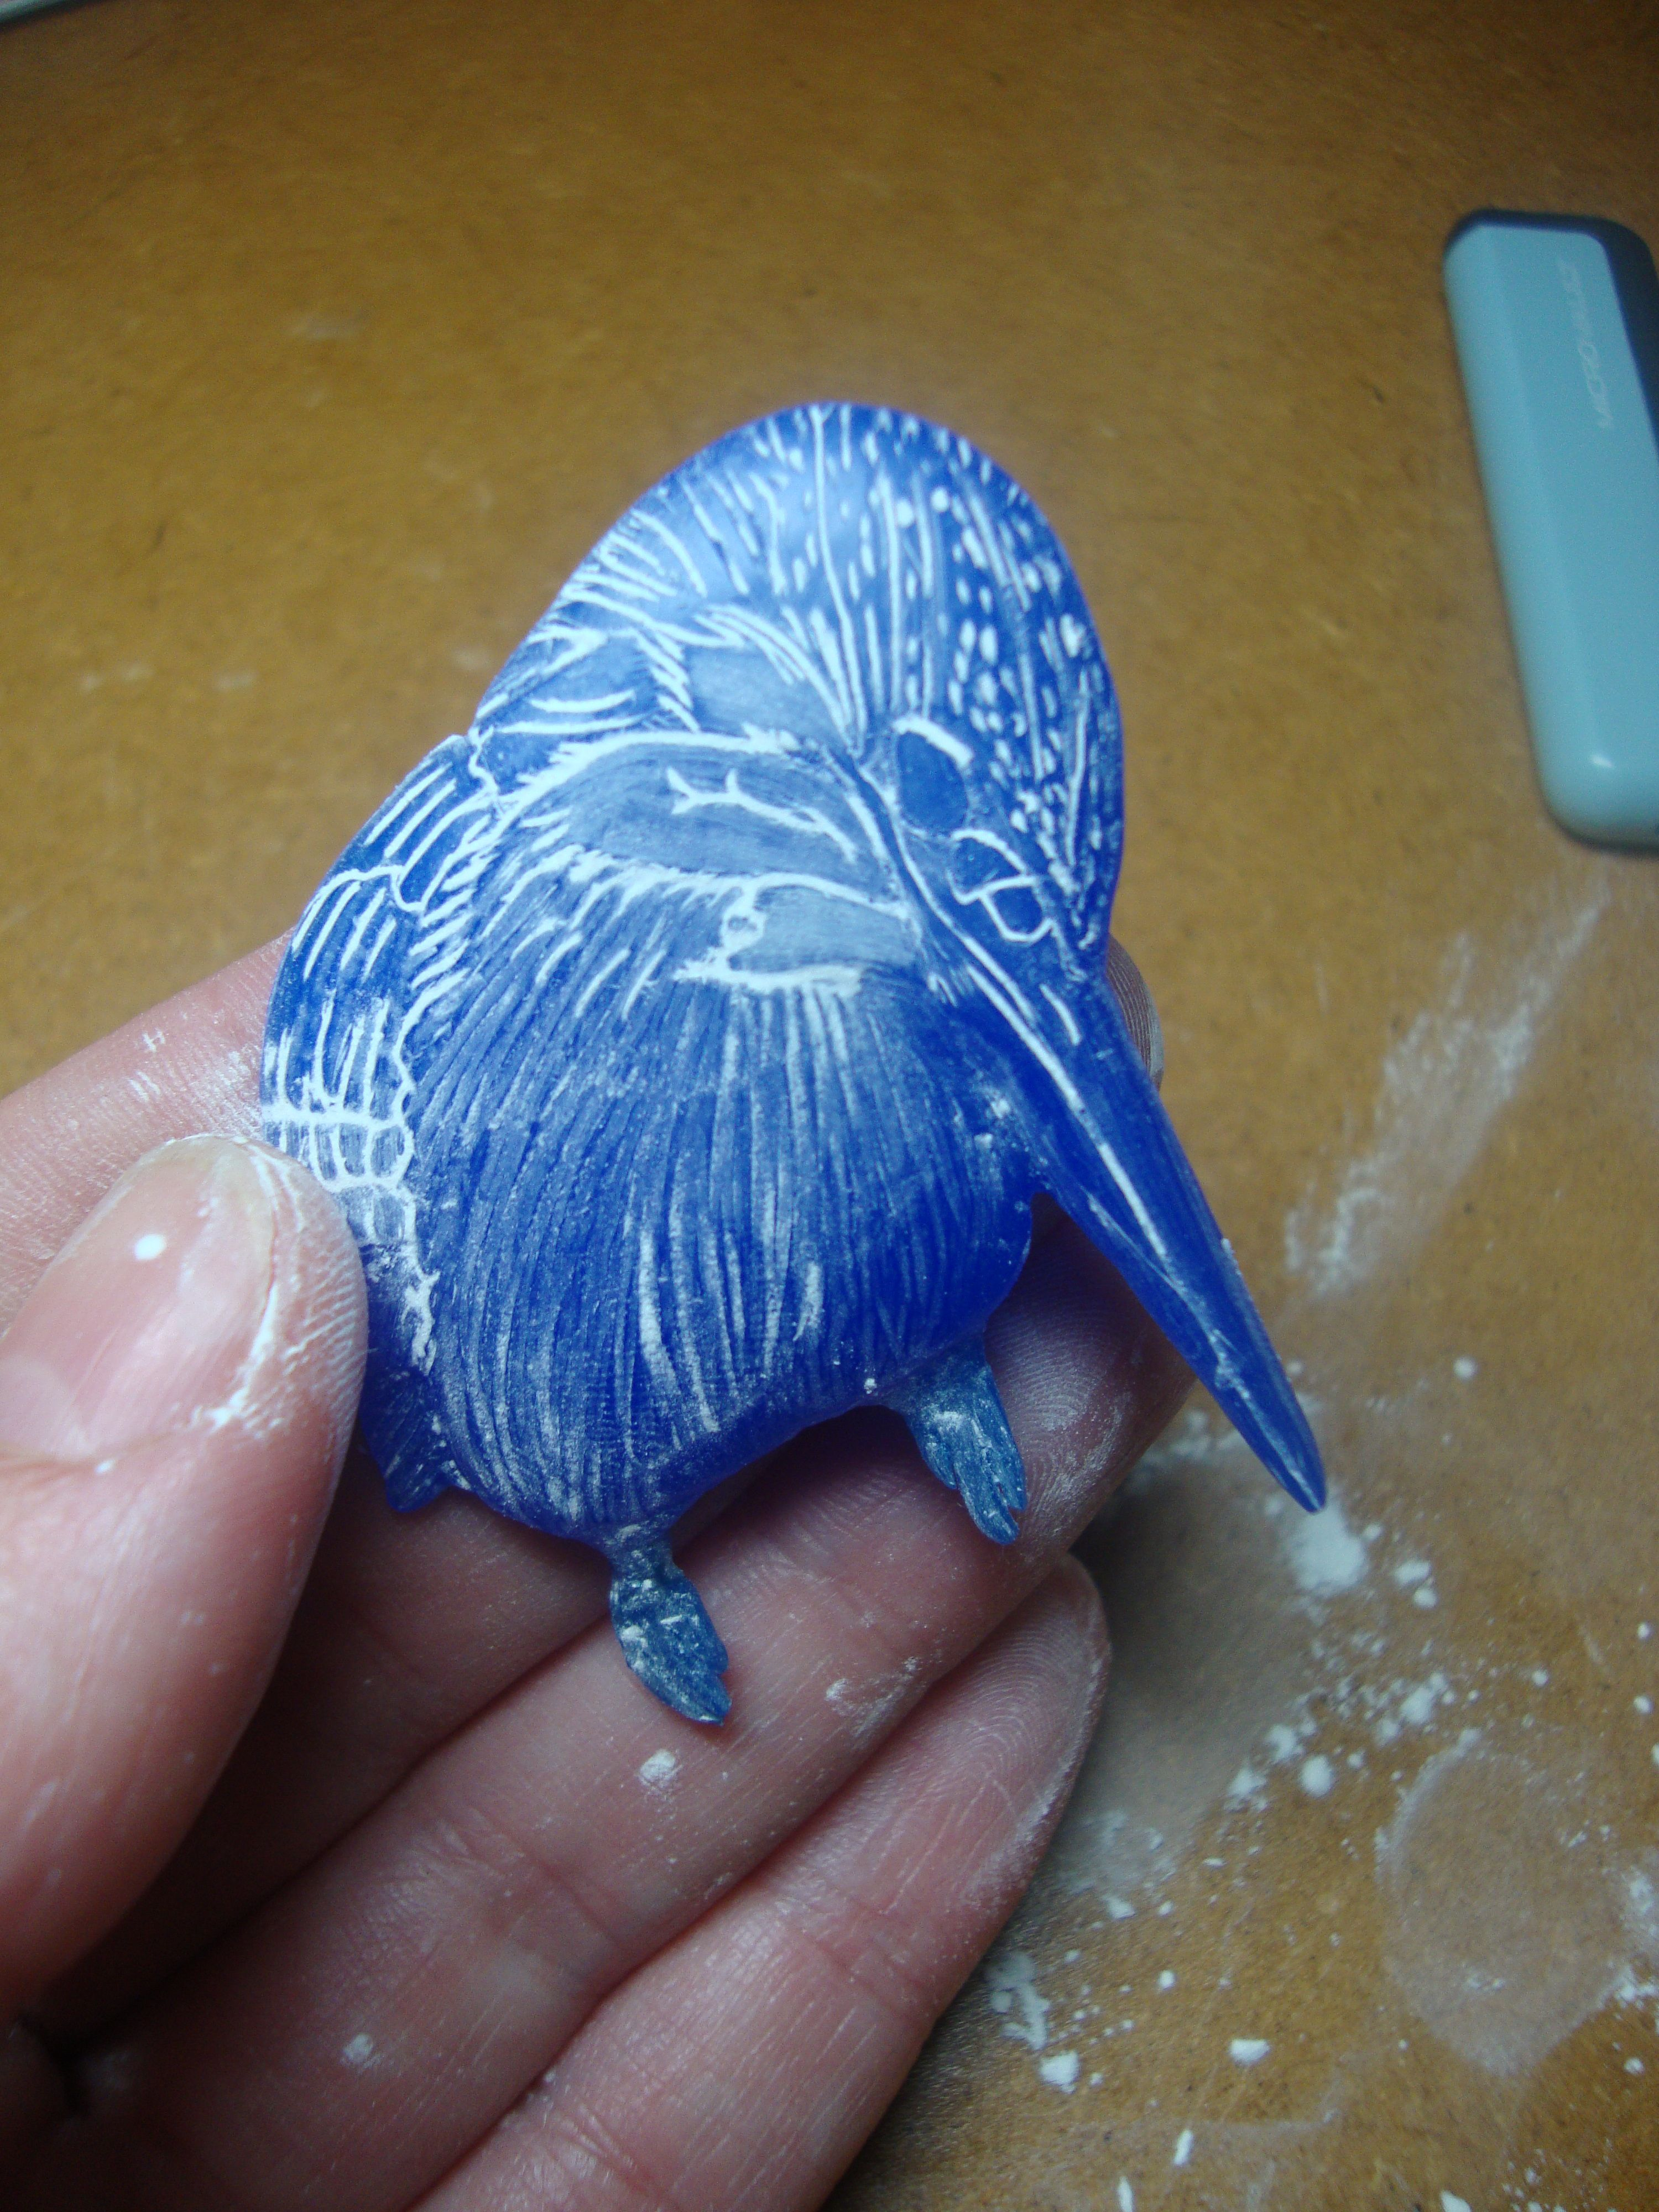 Wax carving to make jewellery… and